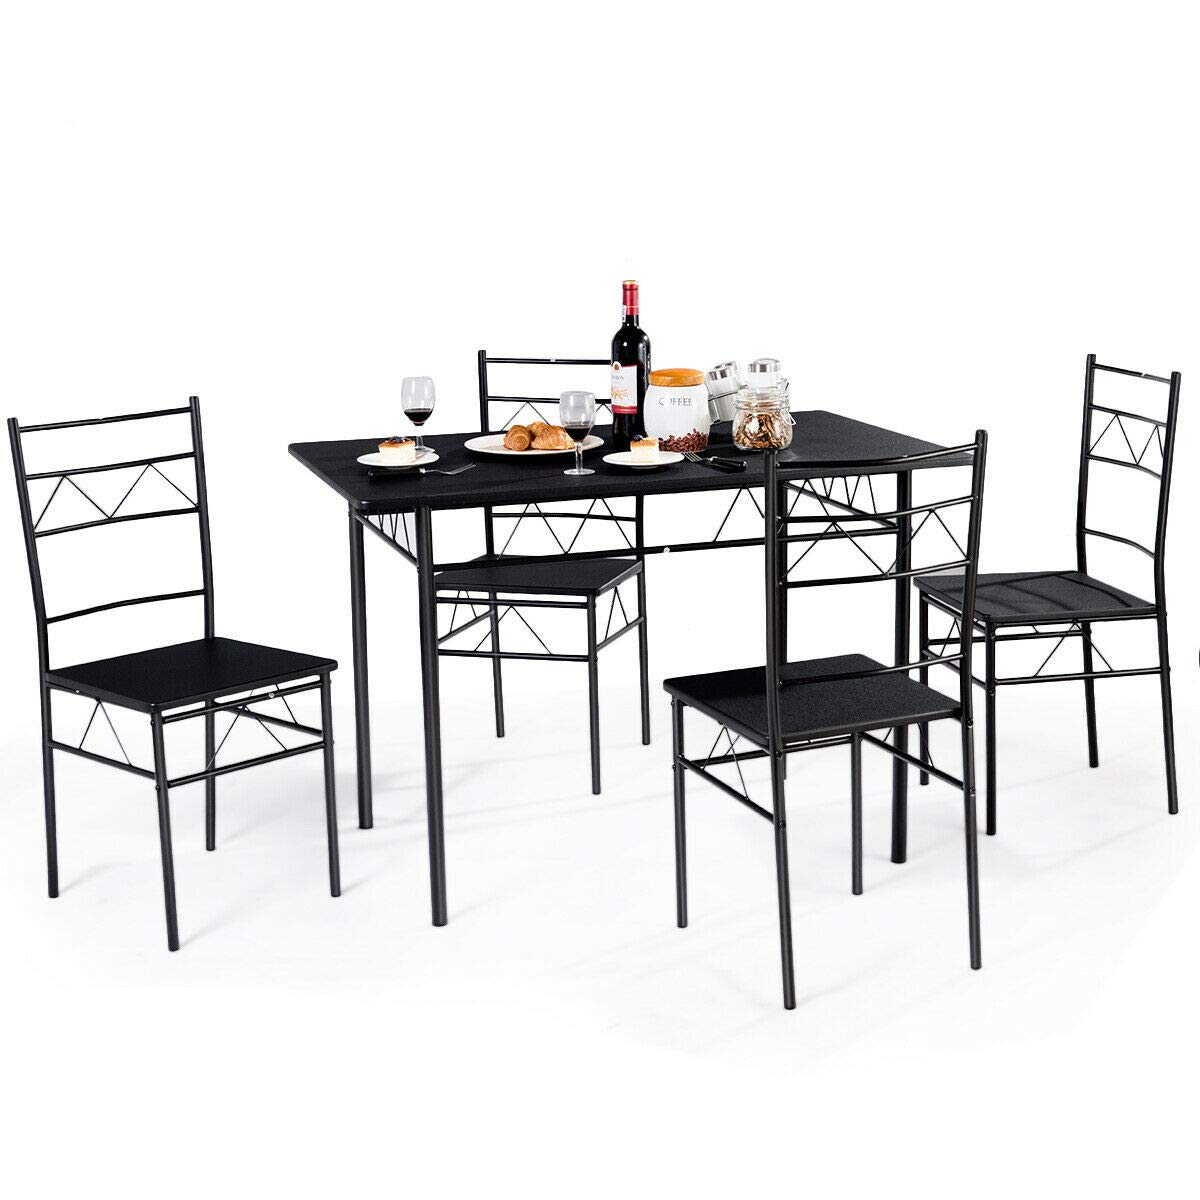 Giantex 5 PCS Dining Table and Chairs Set, Wood Metal Dining Room Breakfast Furniture Rectangular Table with 4 Chairs, Black (Style 3) by Giantex